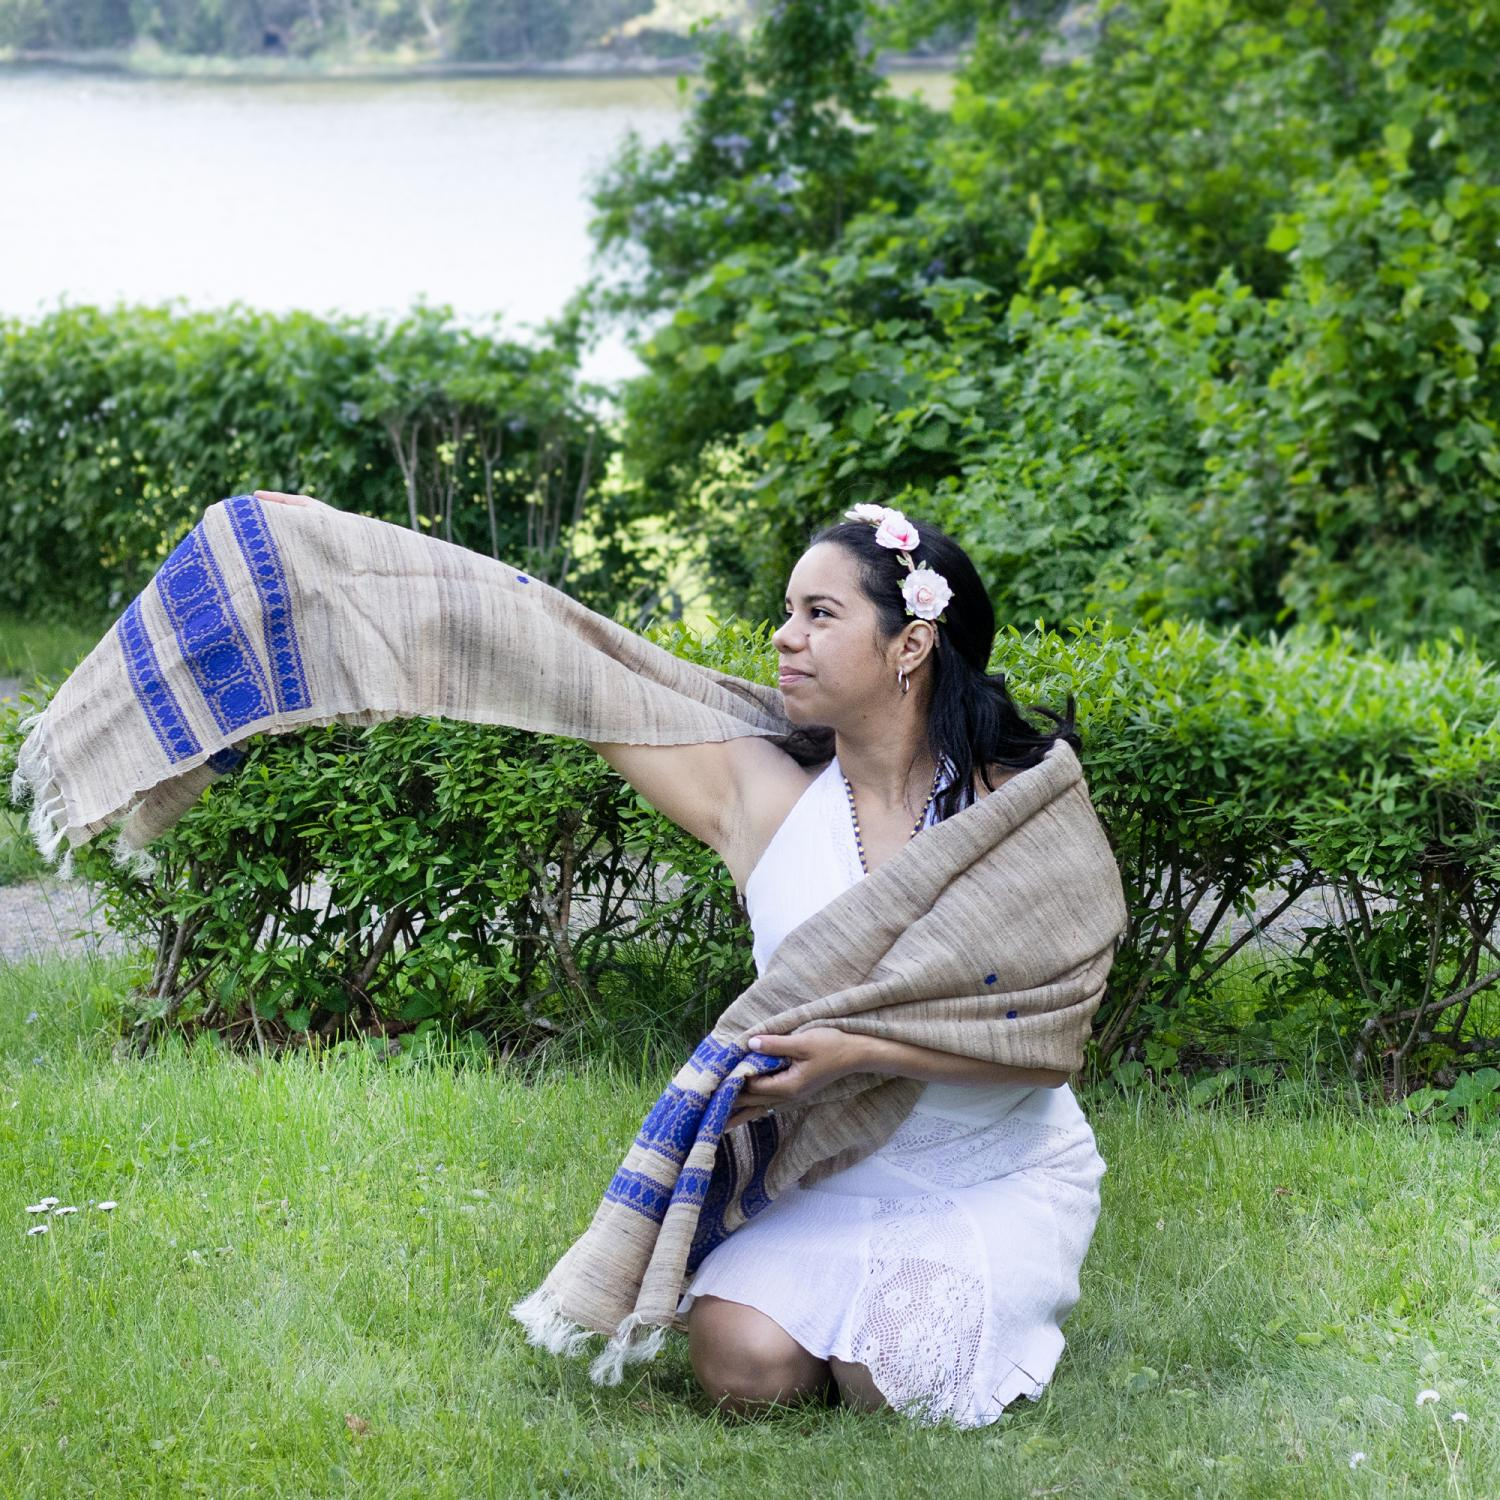 Woman in a white dress and beige gray shawl with blue pattern border sitting on the grass in a park